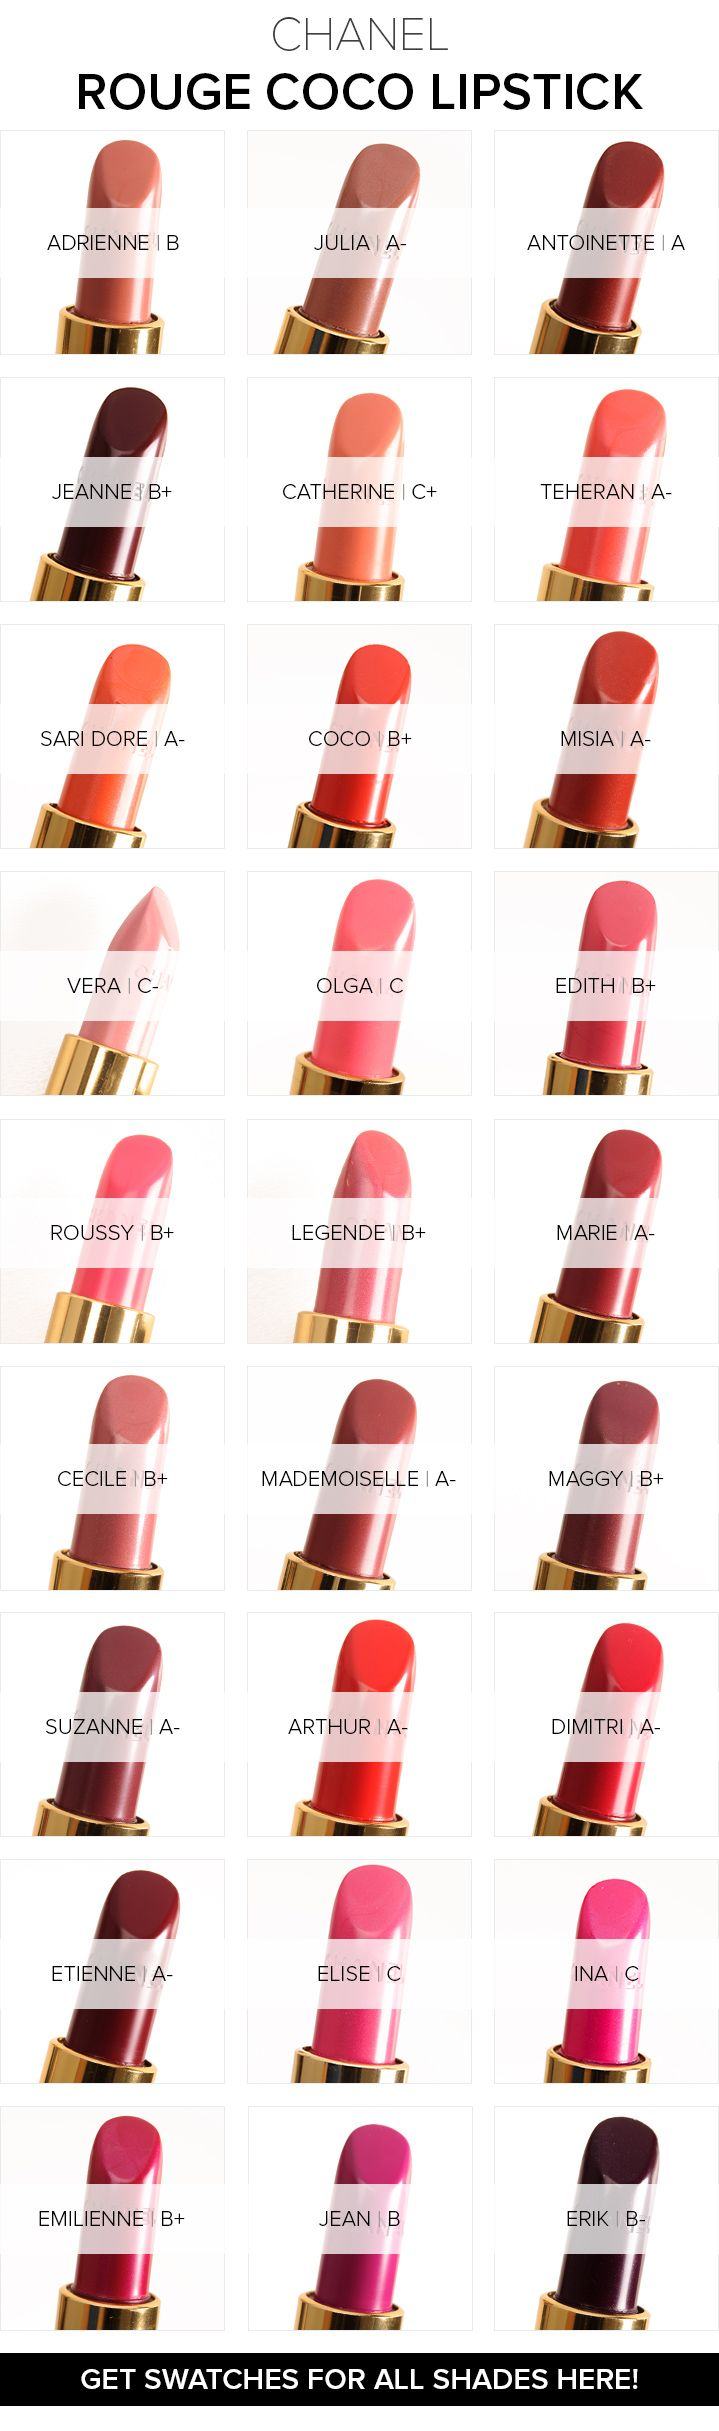 Chanel Rouge Coco Lipstick ($36.00 for 0.12 oz.) was reformulated this year and launched 29 shades. I've reviewed all 27 of the shades I had (a mixture of